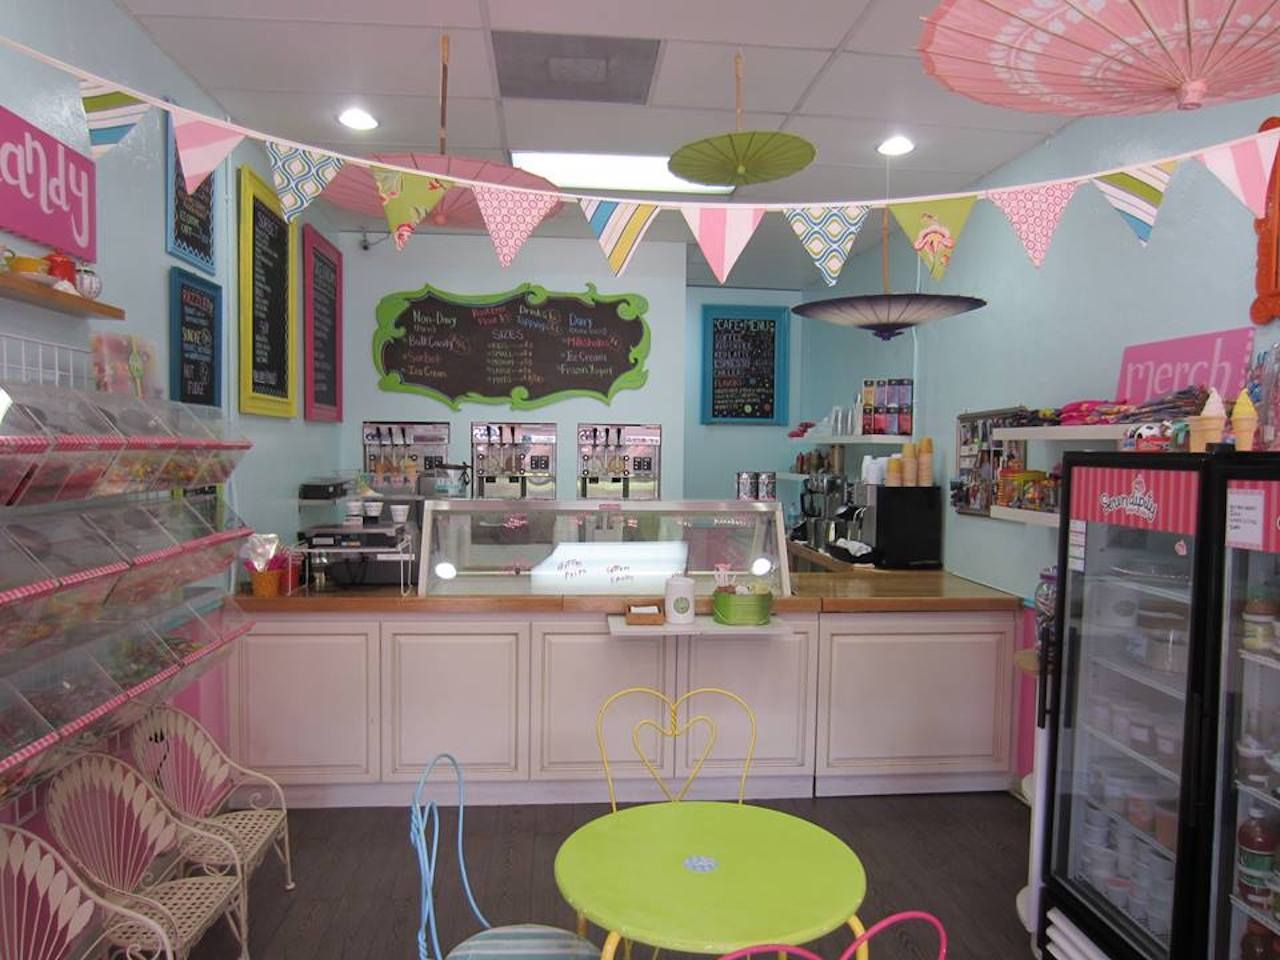 Pastel interior of the Serendipity Yogurt Cafe in Miami